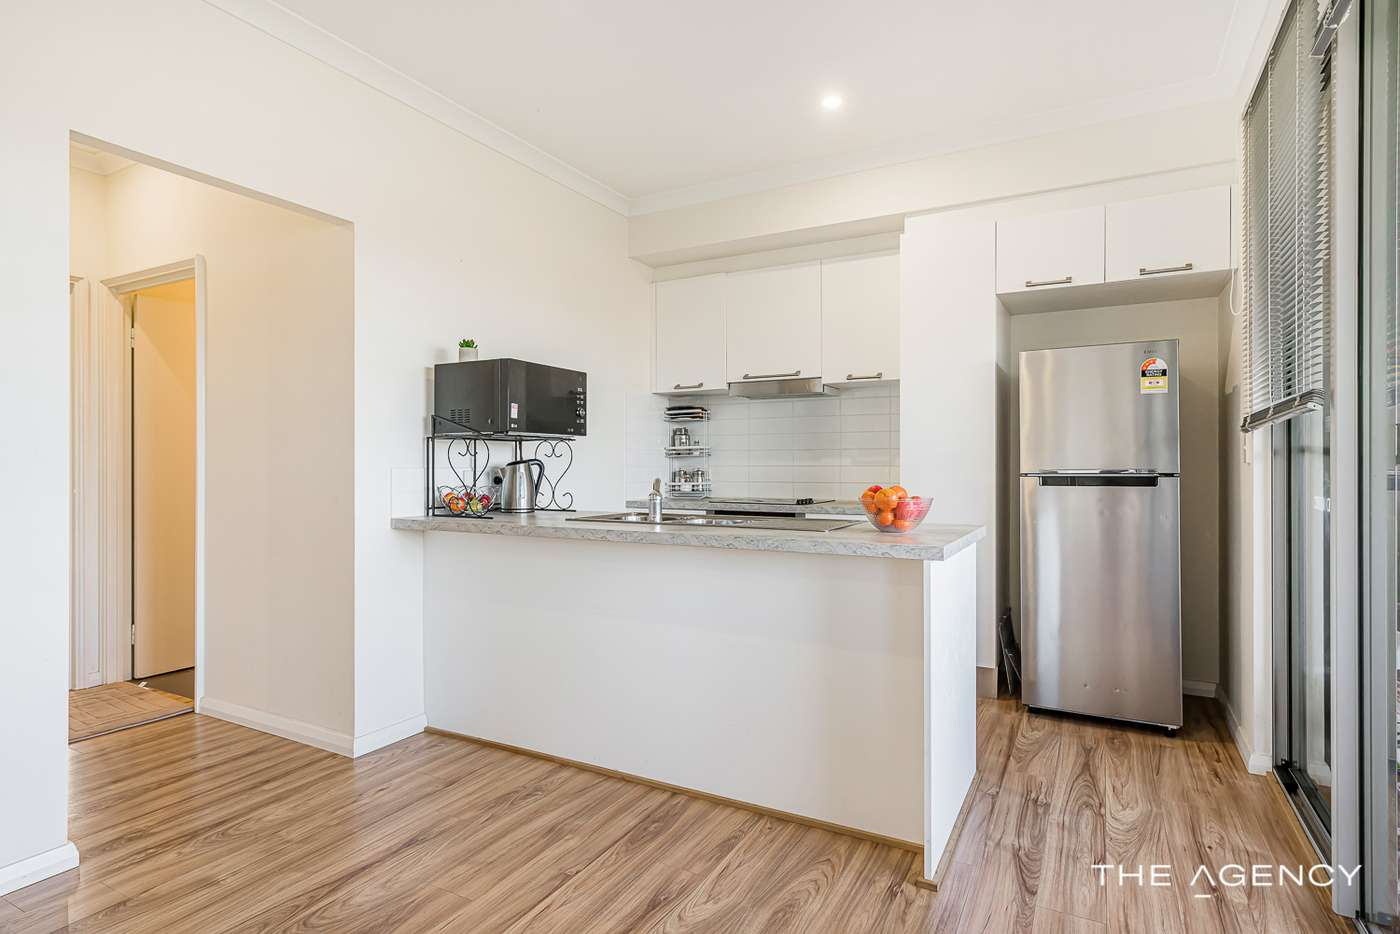 Seventh view of Homely apartment listing, 16/15 Justice Link, Atwell WA 6164